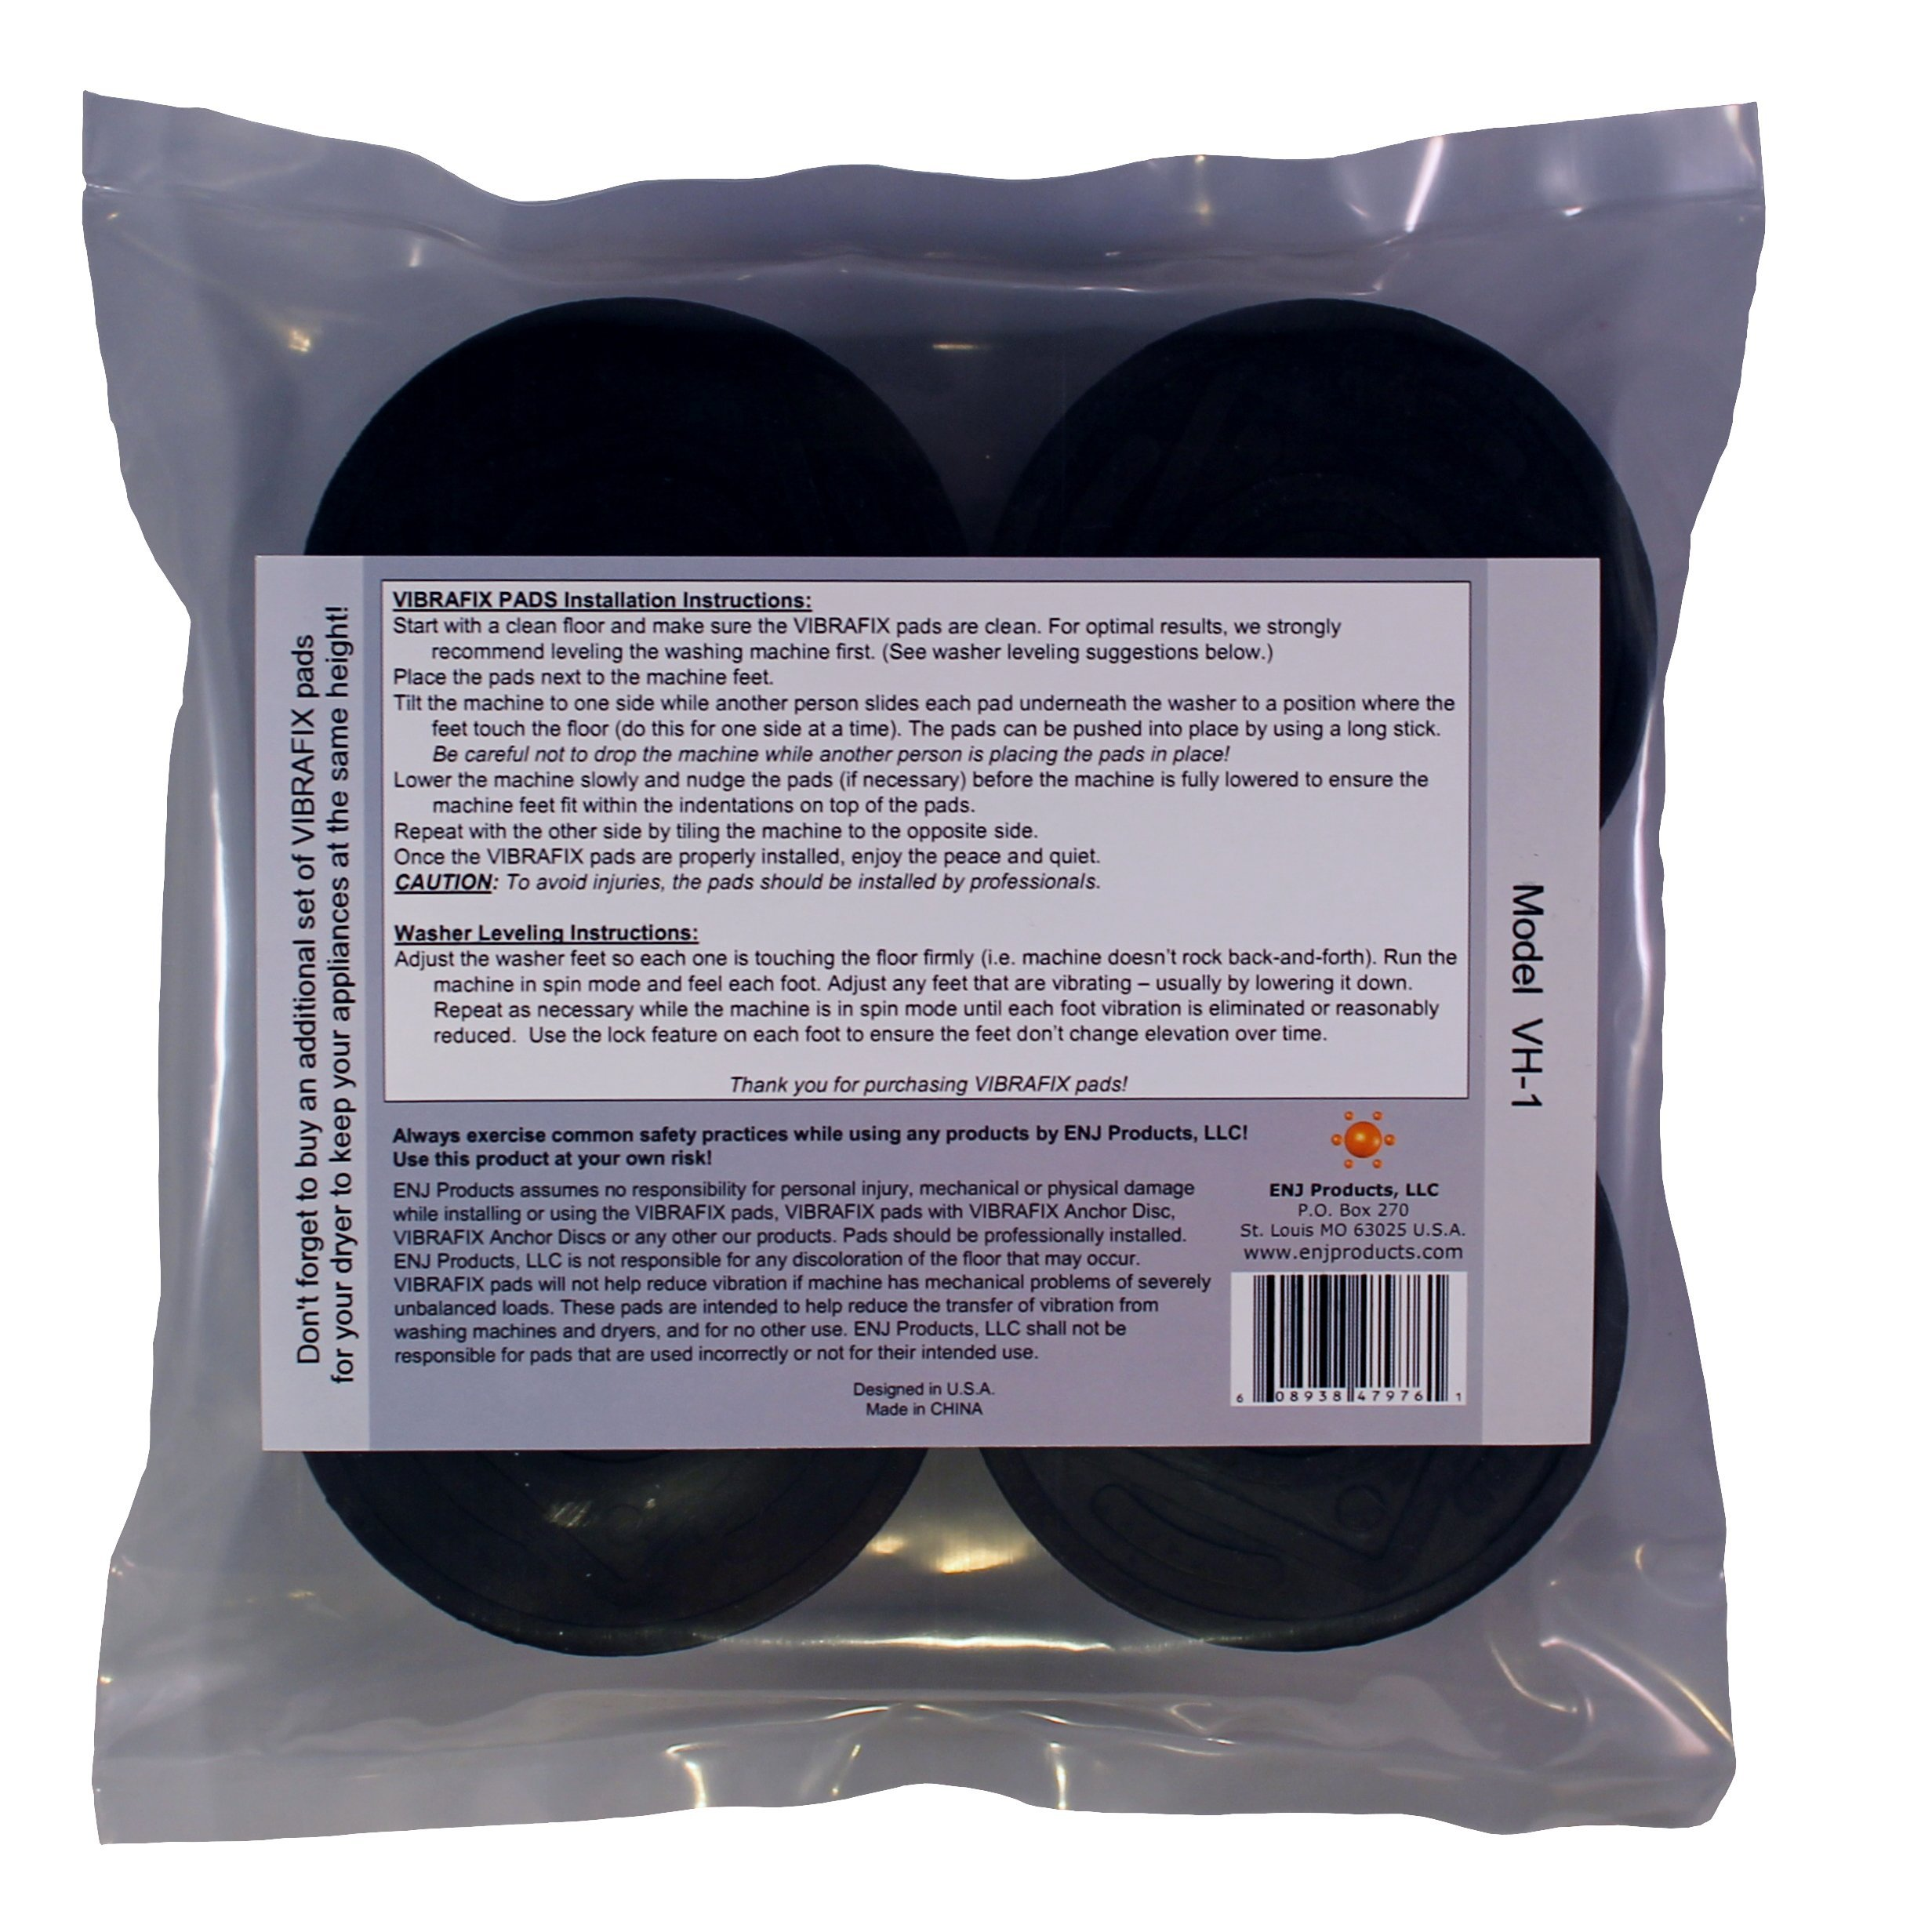 Washer Anti-Vibration and Anti-Walk Pads VIBRAFIX